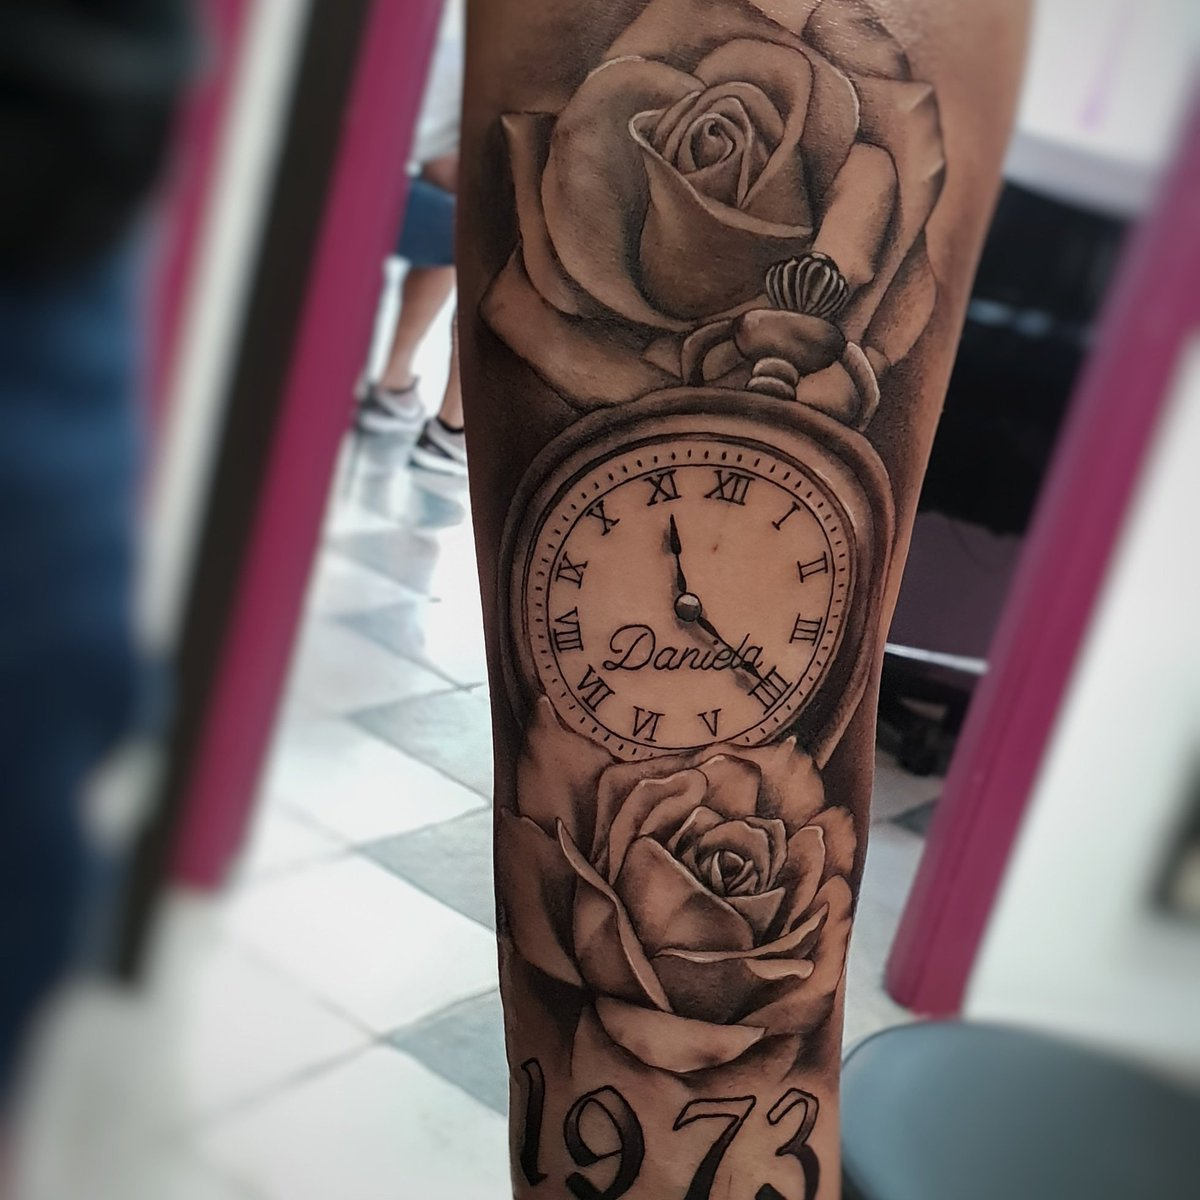 Sergio Tattoo On Twitter Rosas Y Reloj Tatuador At Sergiotattoo